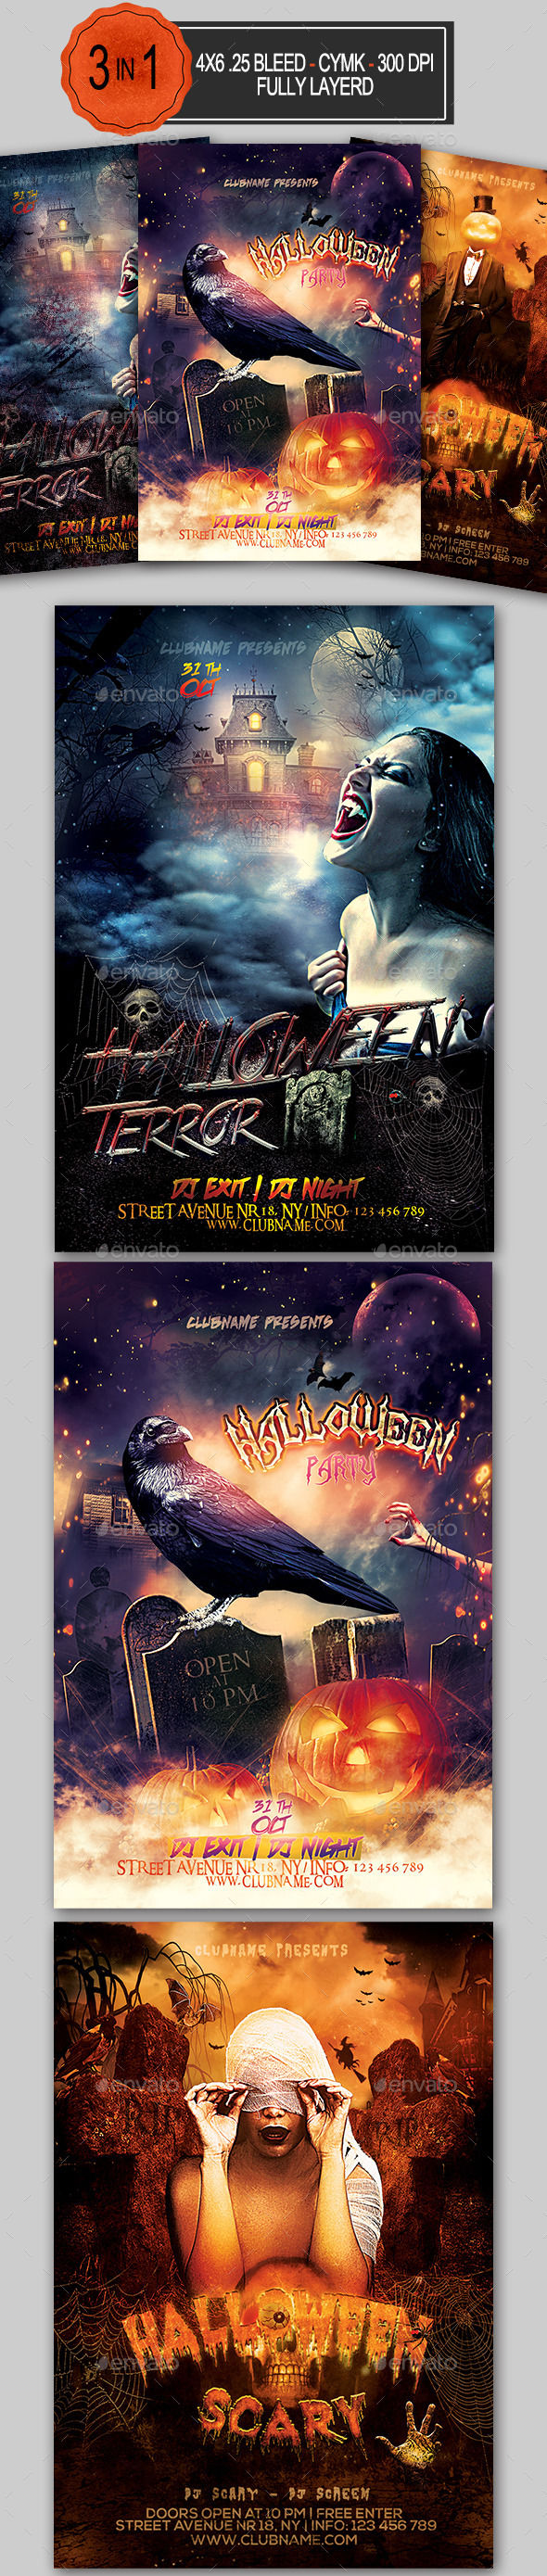 Halloween Flyer Bundle by Ionescu_stefania (Halloween party flyer)